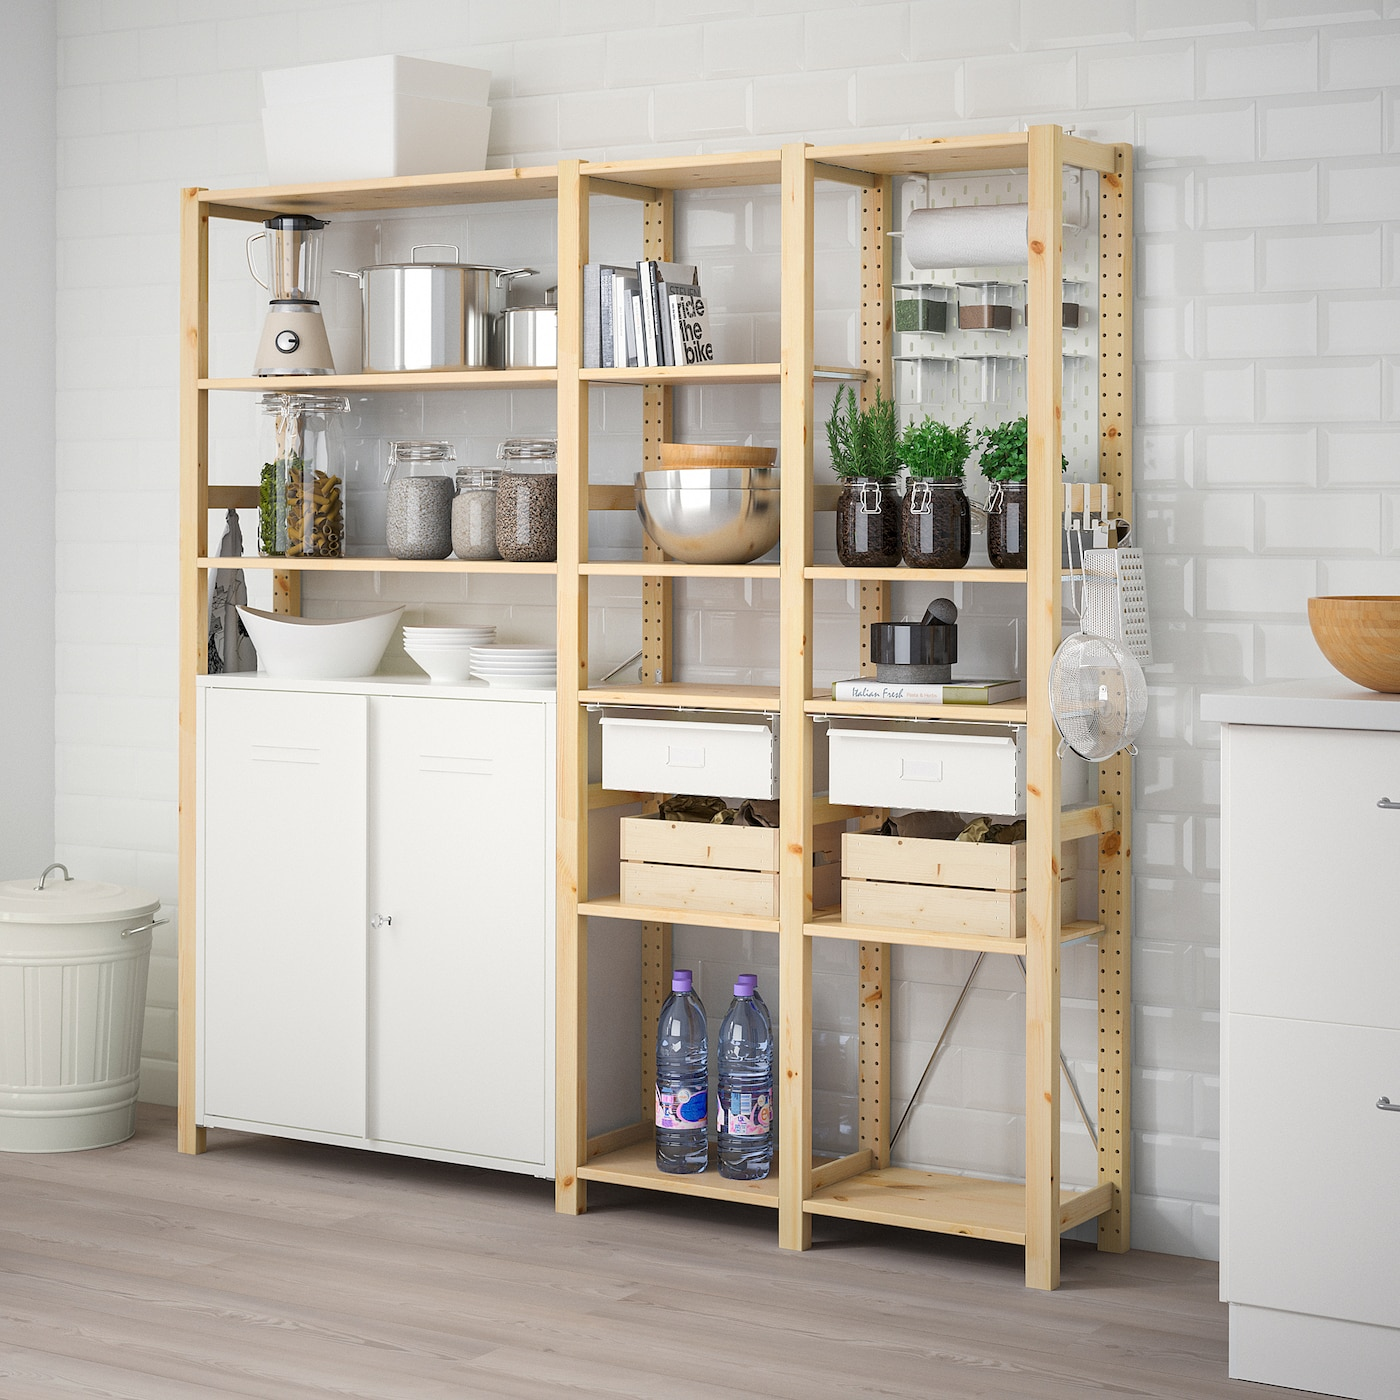 IVAR 3 sections/cabinet/shelves, pine, white - Add to cart ...